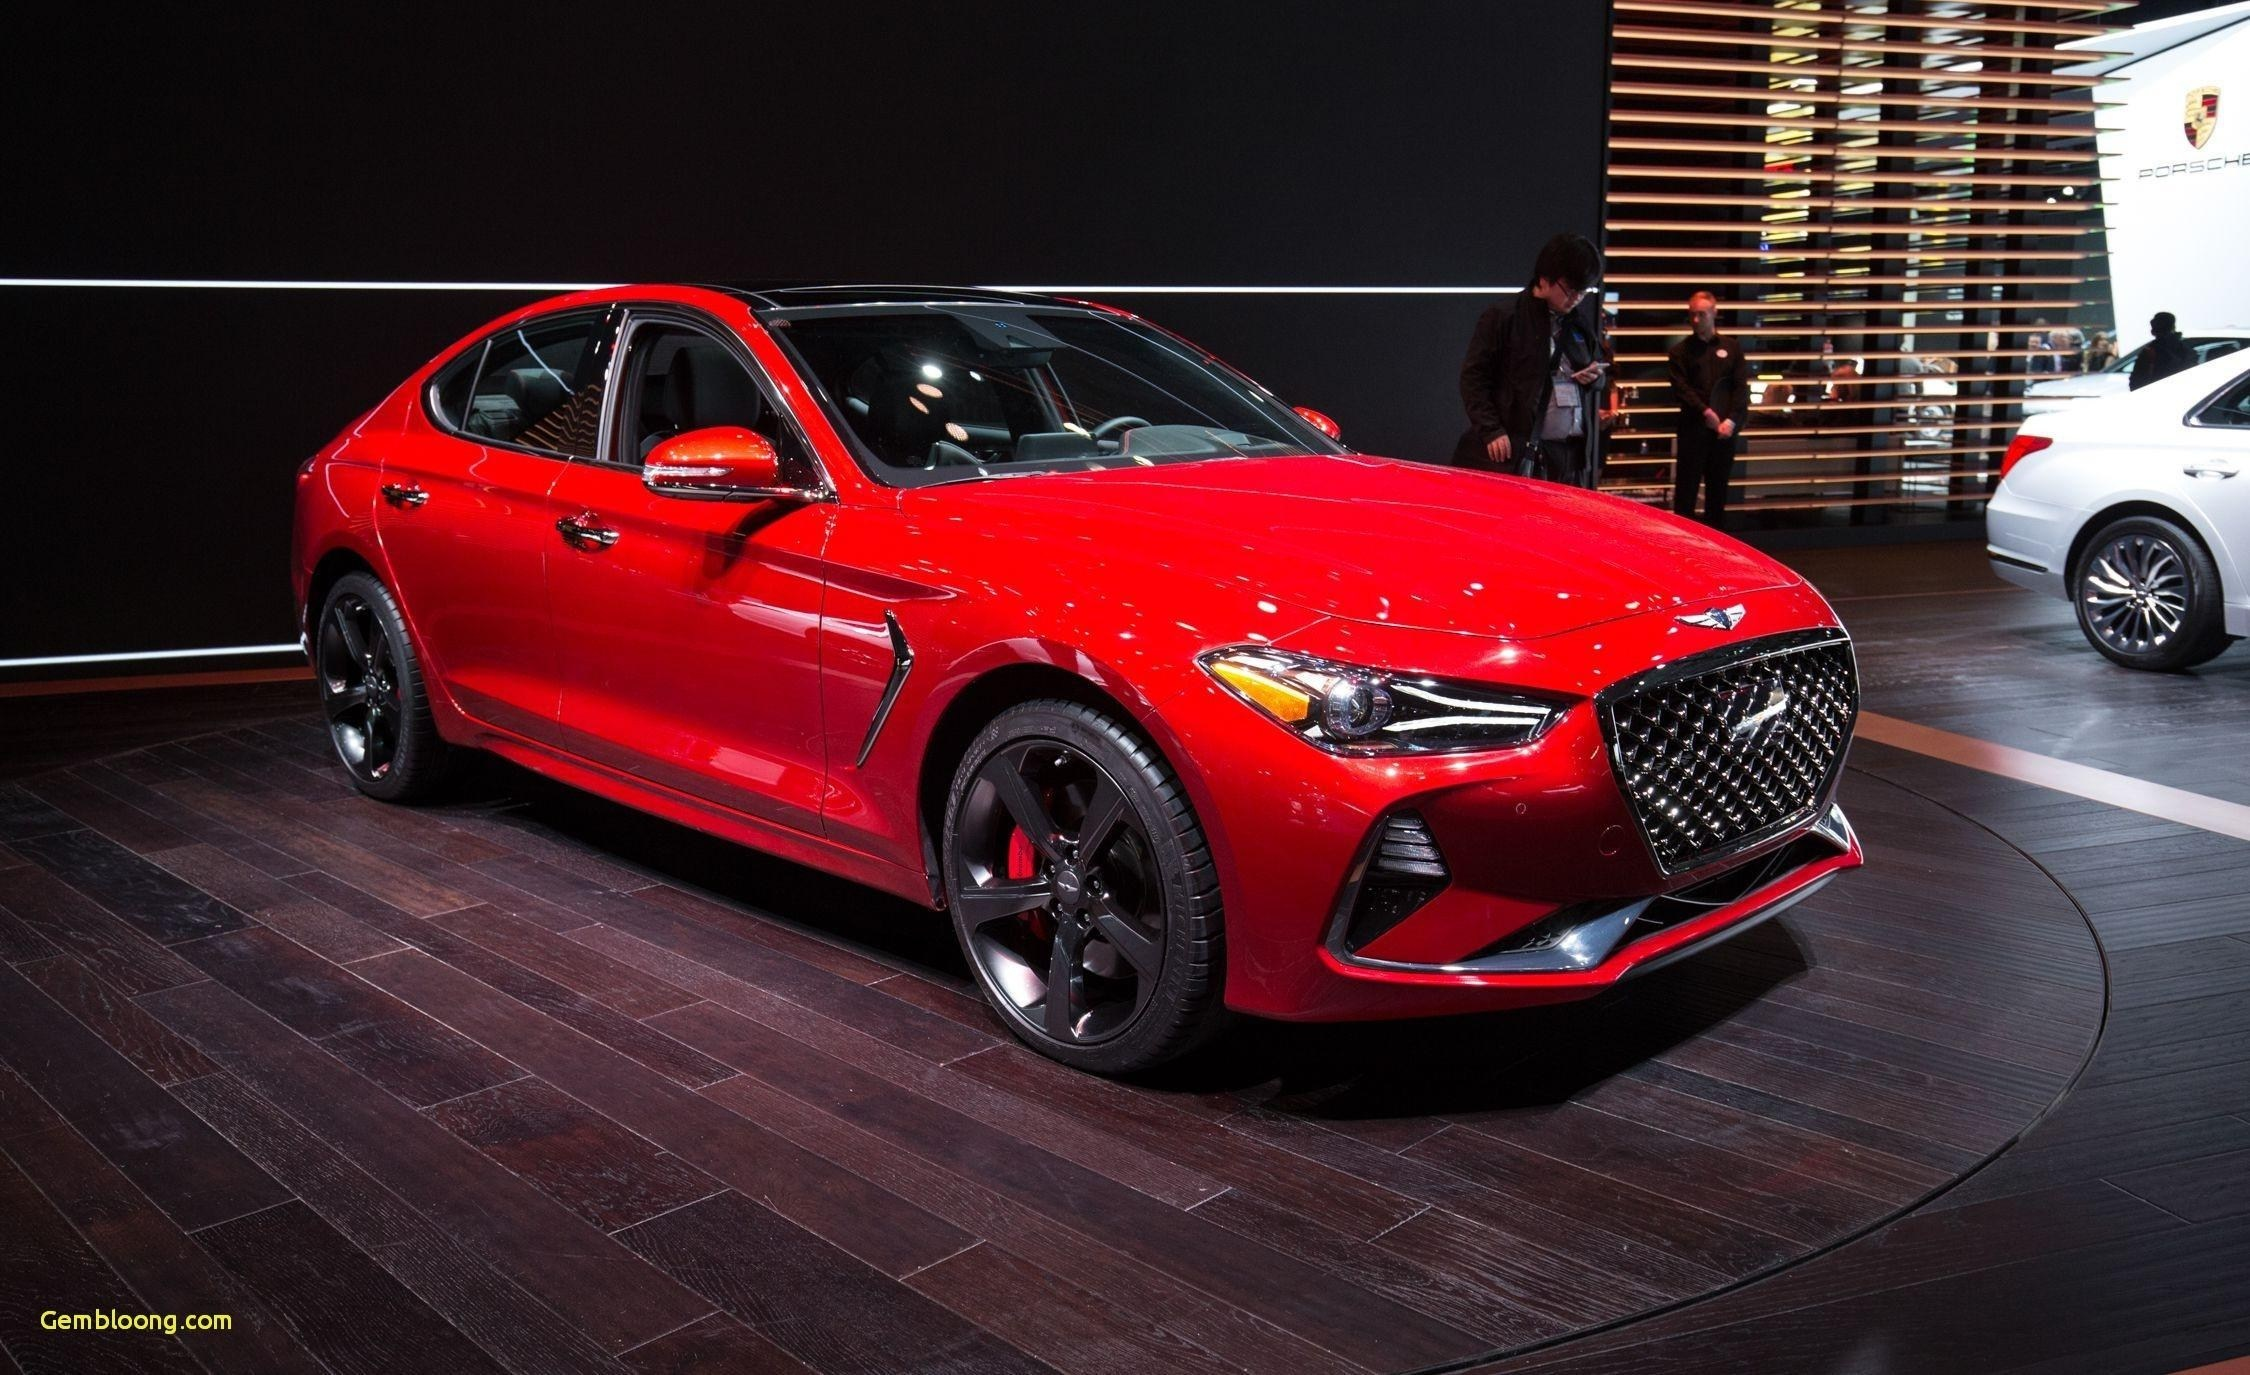 44 New 2019 Hyundai Genesis Coupe V8 Rumors